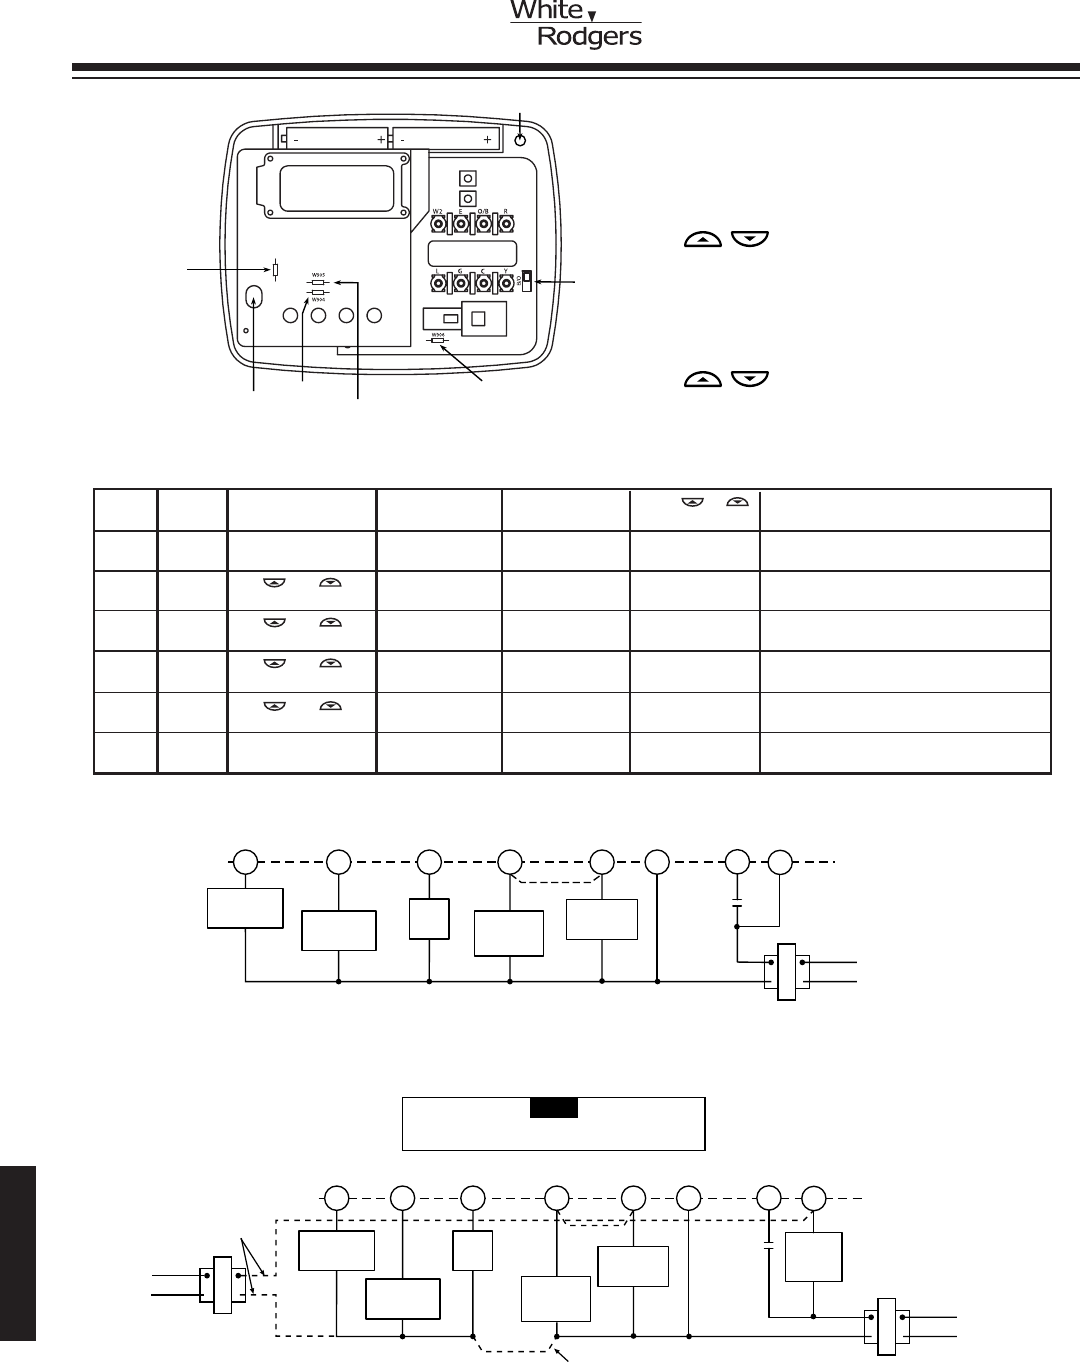 white rodgers thermostat wiring diagrams pollak fuel tank selector valve diagram 1f79 44